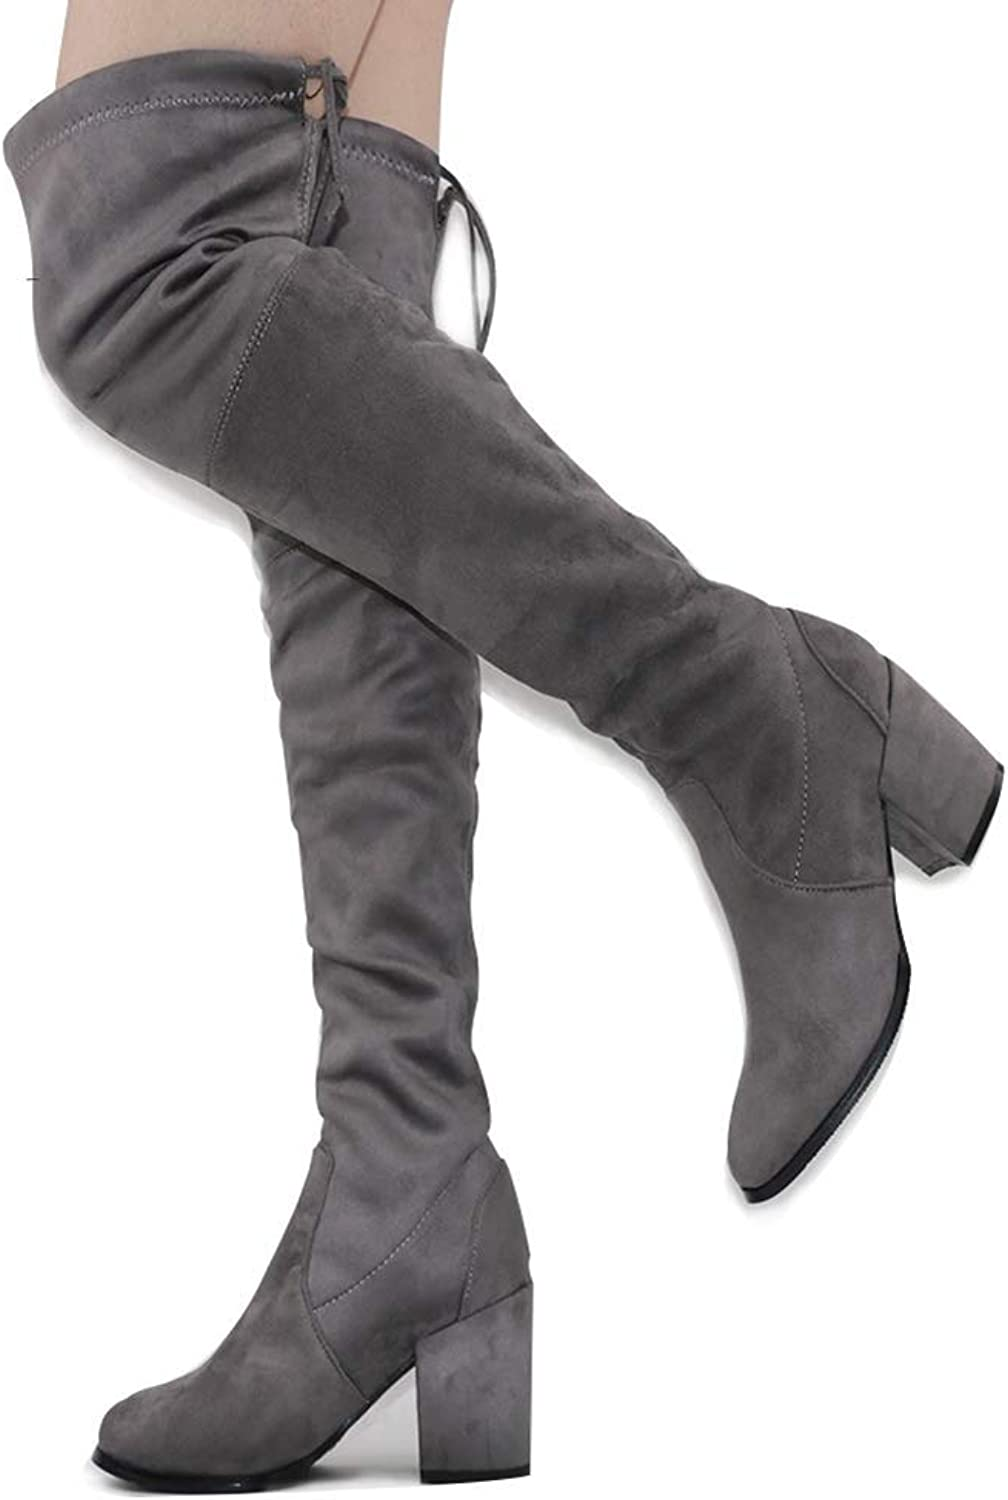 Webb Perkin Women for Women Suede 8.5Cm High Heel Boots 52Cm Tube High Heel shoes Fashion Over The Knee Boots